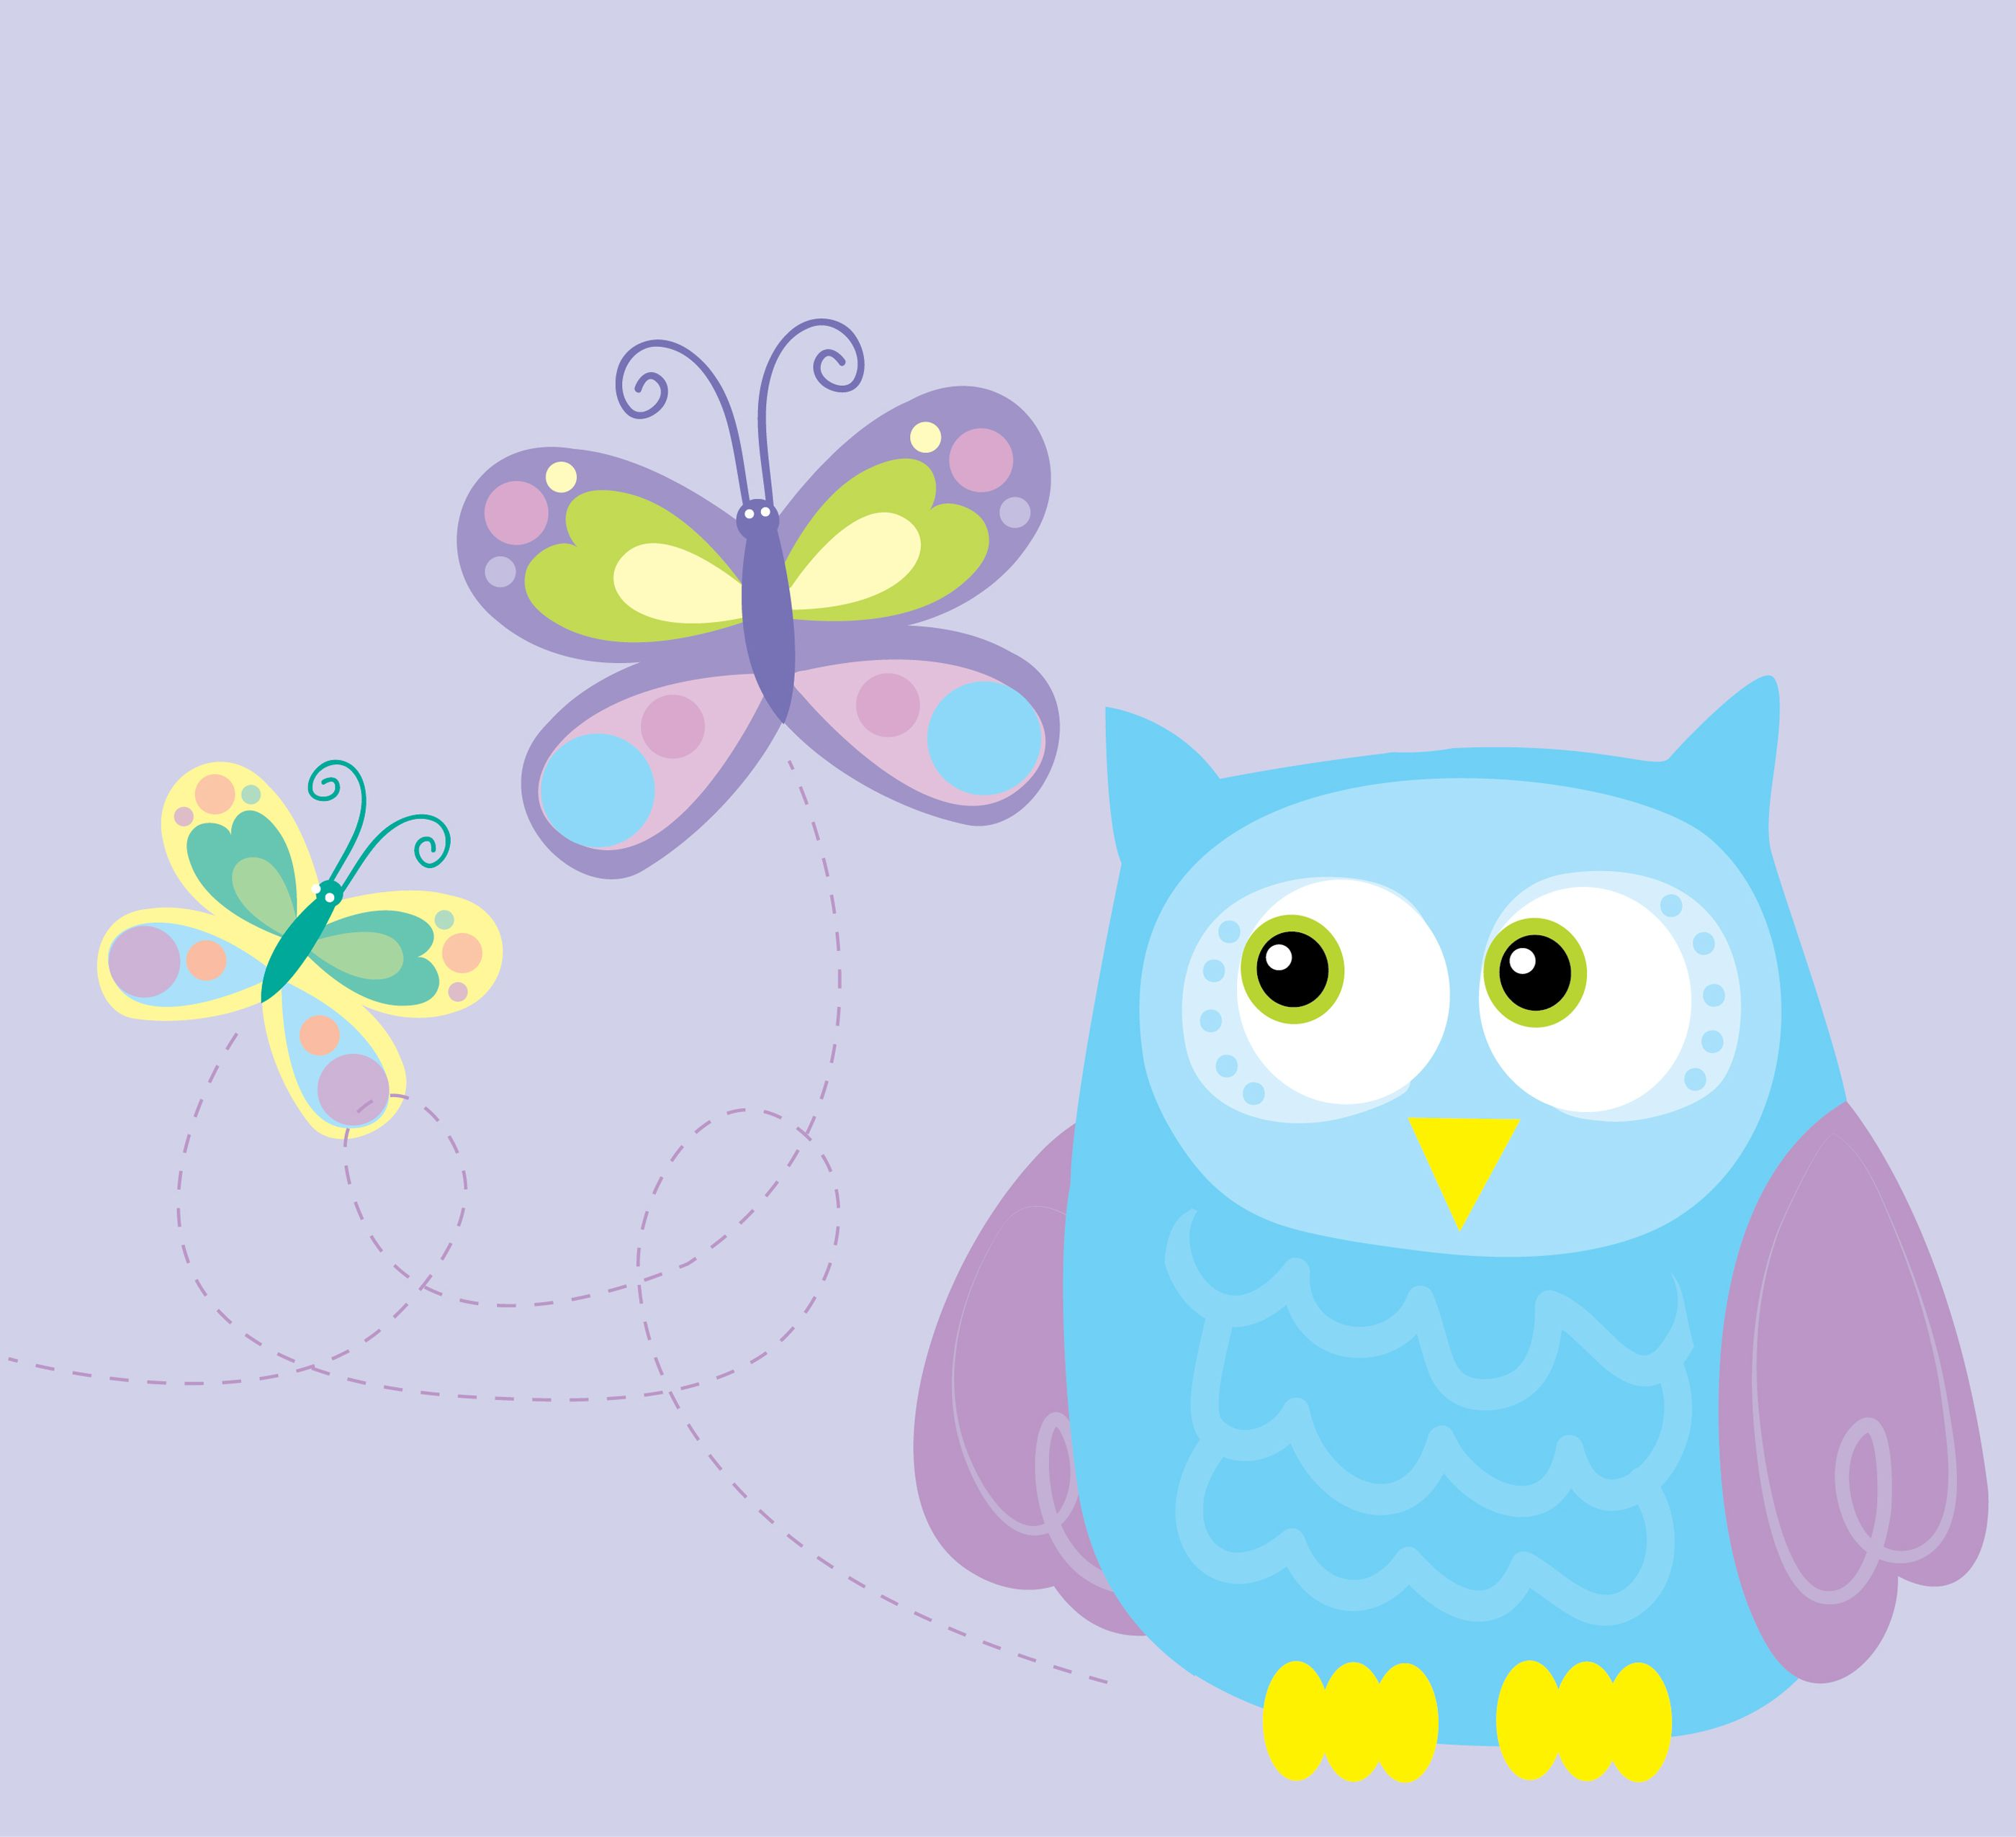 owl art for desktop cartoon owl how to little known owl art for desktop cartoon owl how to little known trick to researching